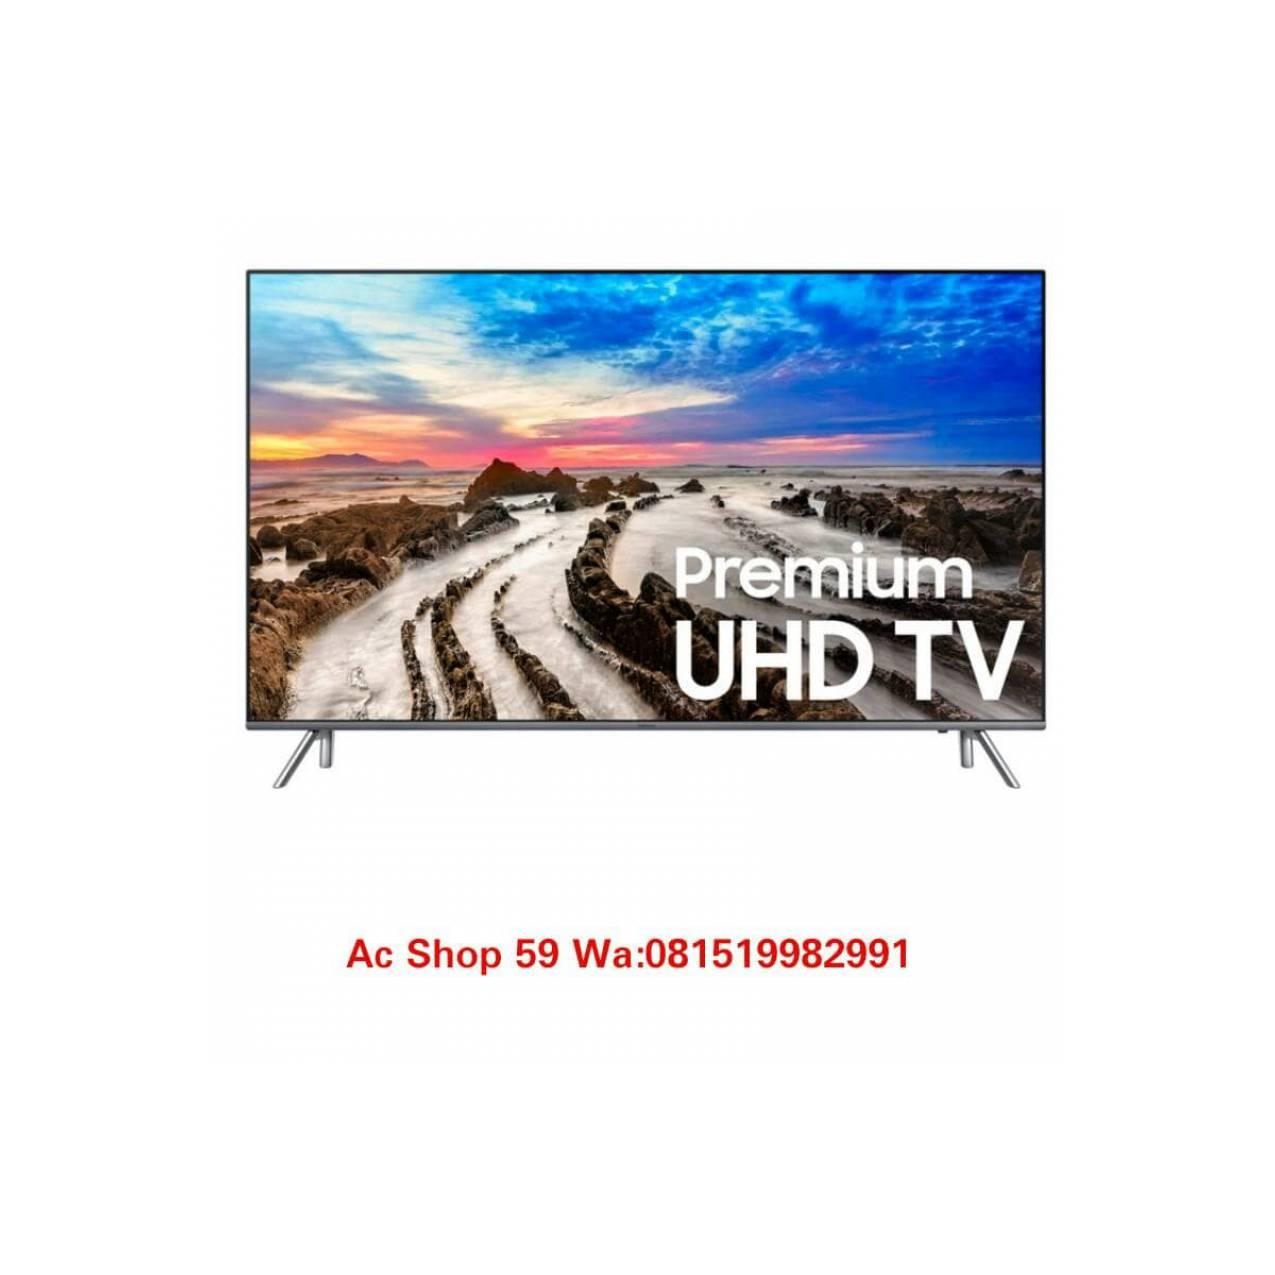 SAMSUNG 55MU7000 55 INCH PREMIUM UHD 4K SMART LED TV FLAT NEW 2017